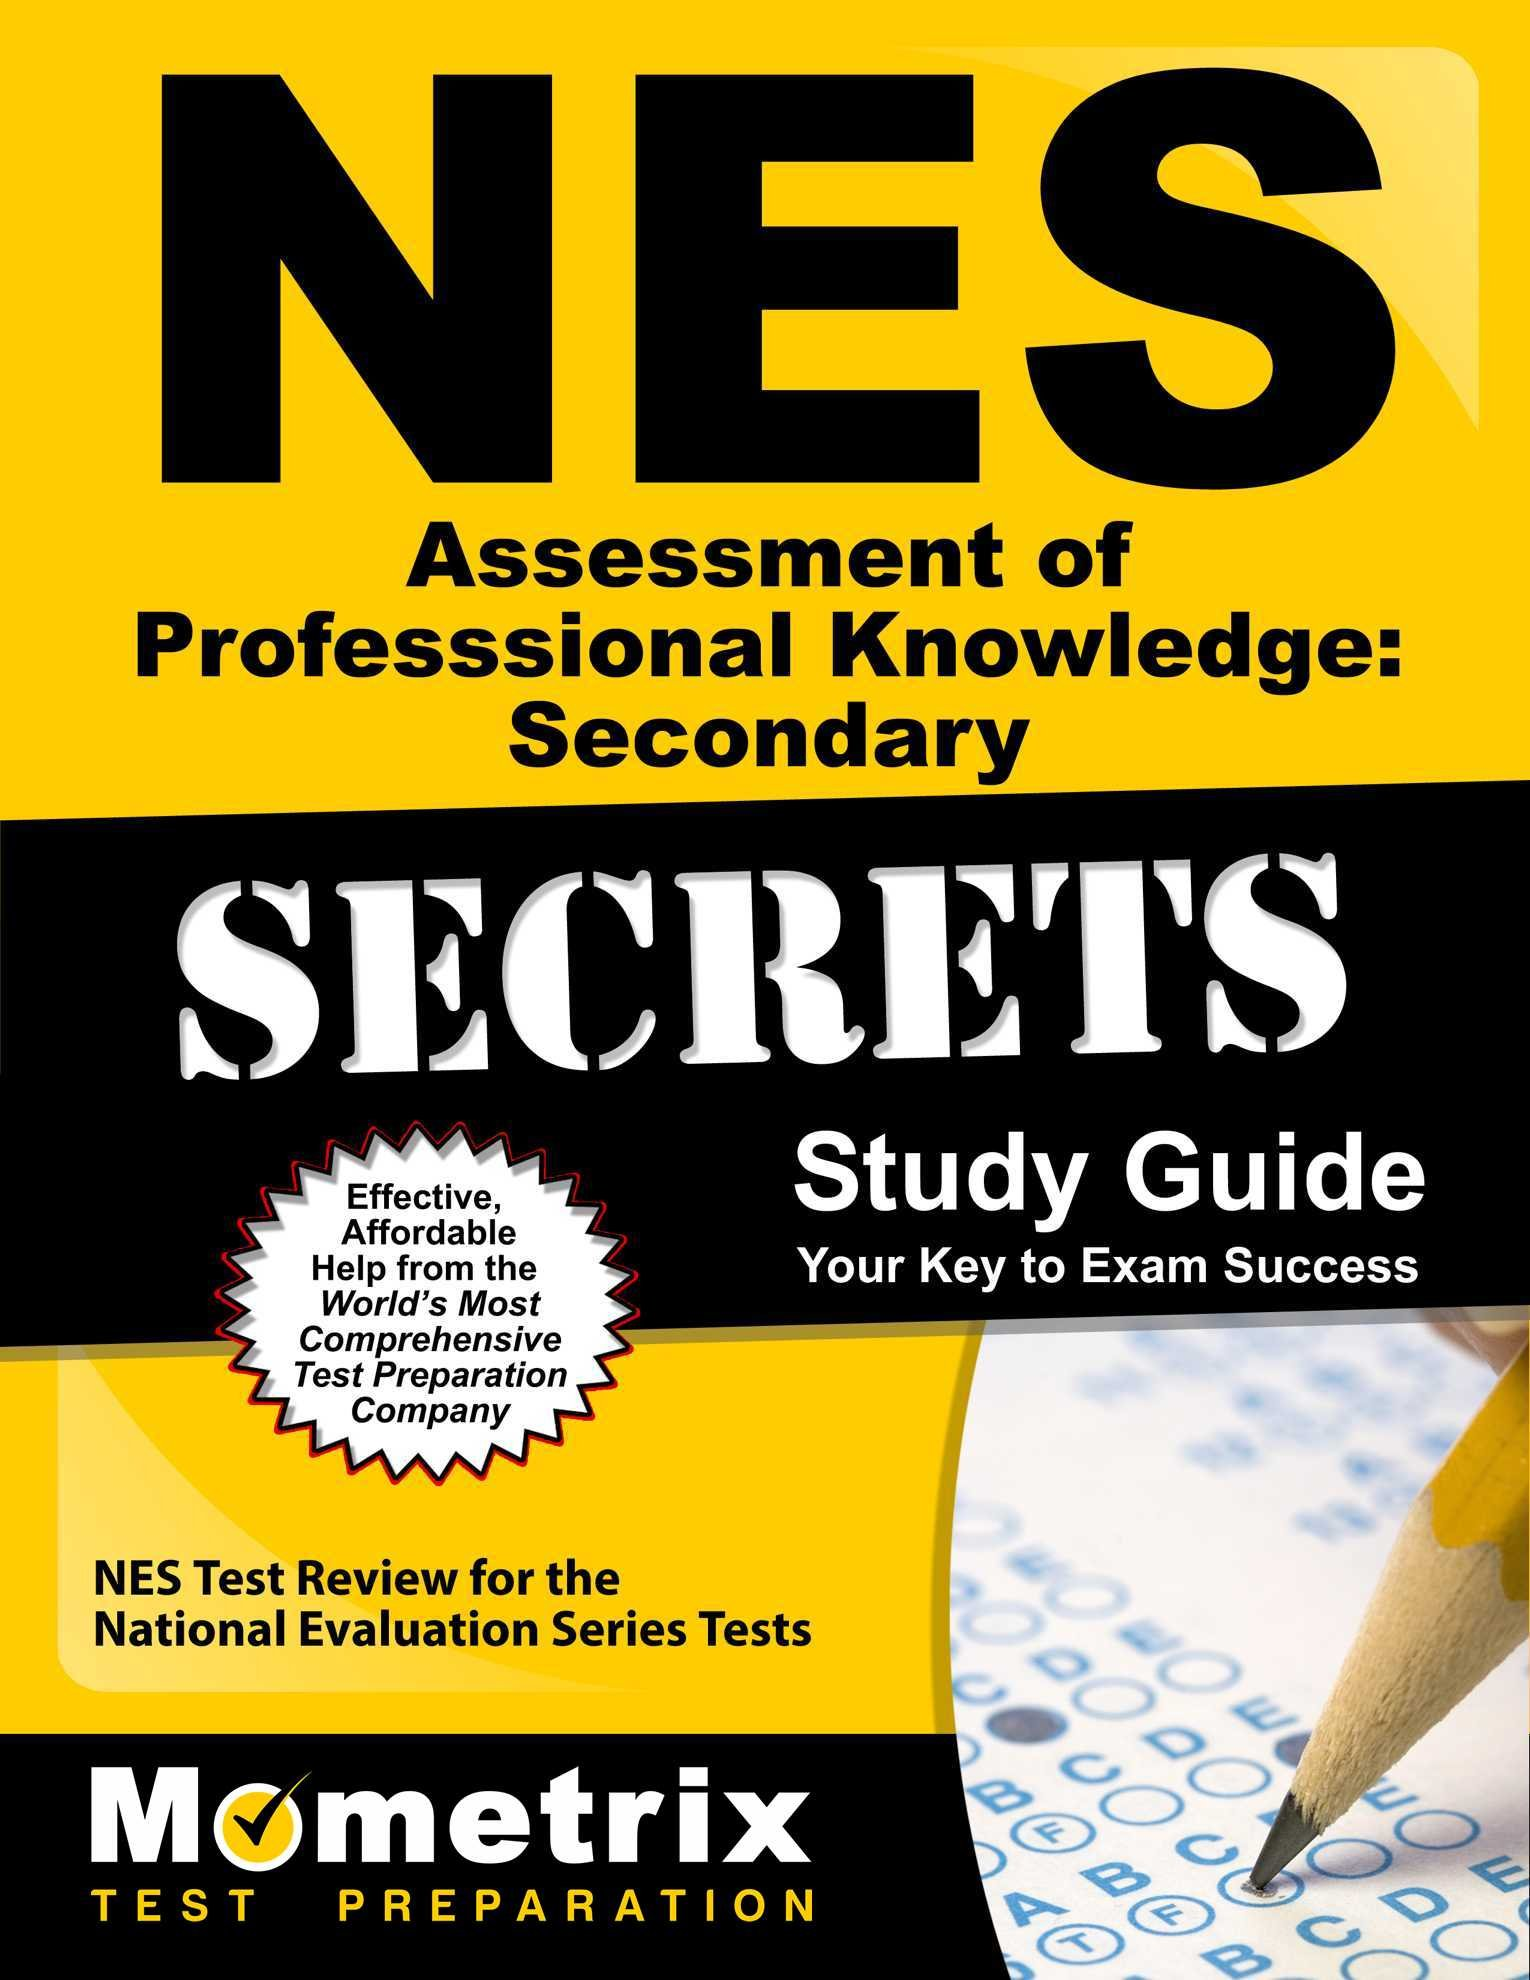 nes assessment of professional knowledge secondary secrets study nes assessment of professional knowledge secondary secrets study guide nes test review for the national evaluation series tests mometrix secrets study